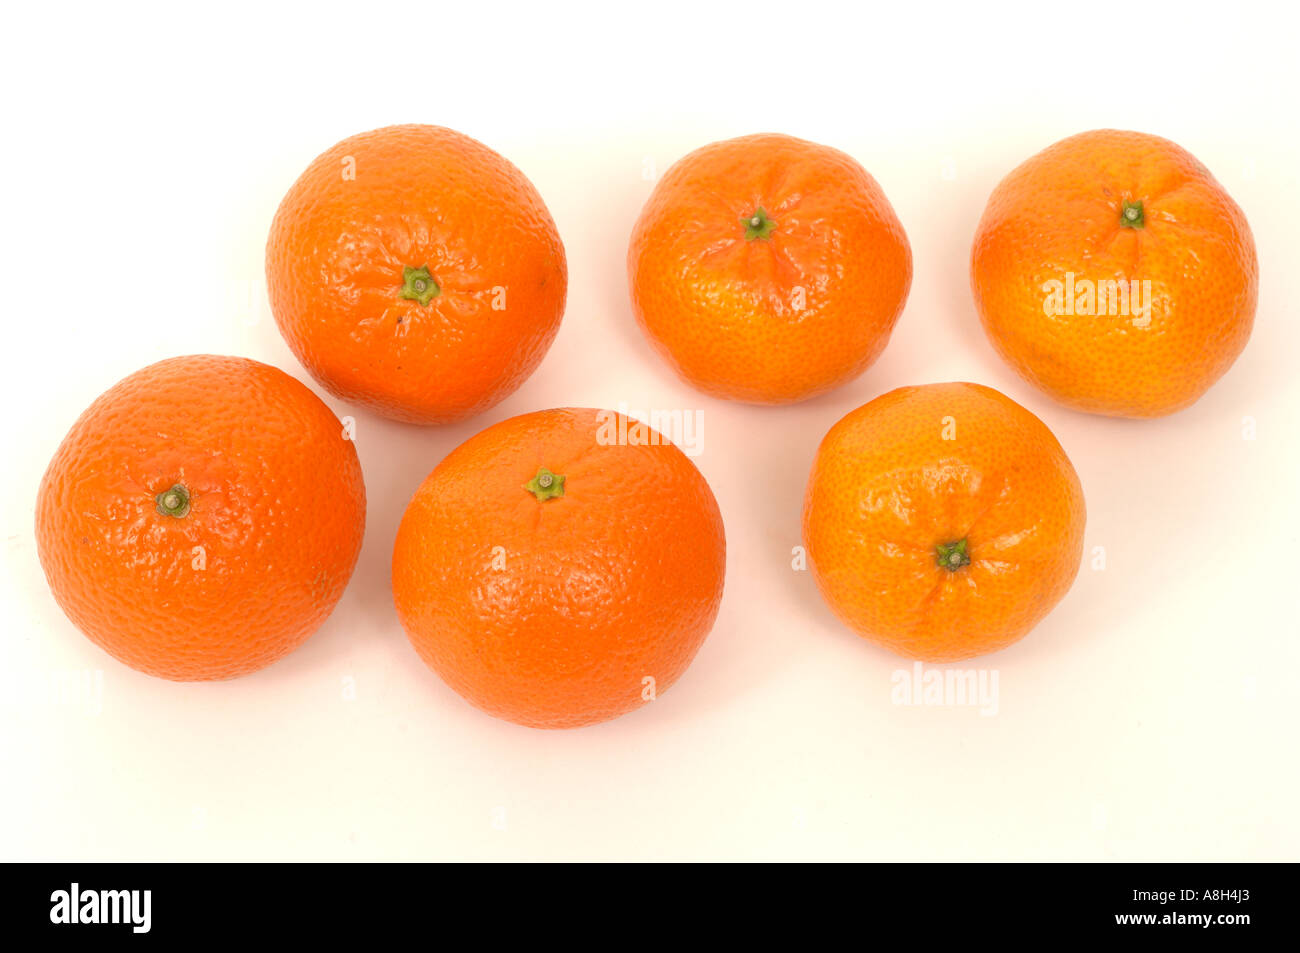 Satsumas clementines supermarket bought and in normal shop condition - Stock Image